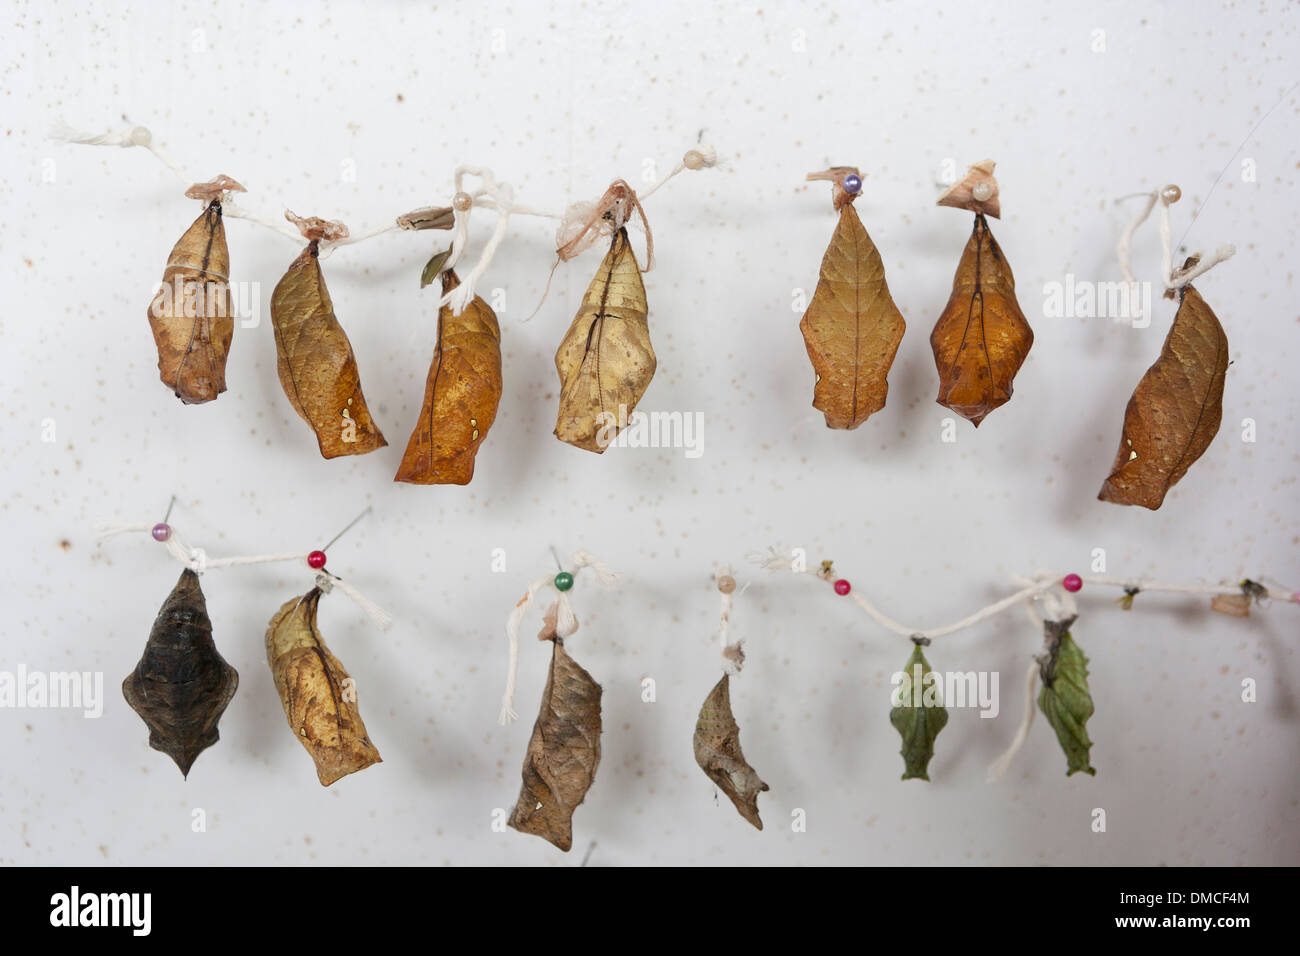 many butterfly crysalis suspended at a butterfly zoo awaiting the emerging of adult butterflies. Caterpillar metamorphosis - Stock Image